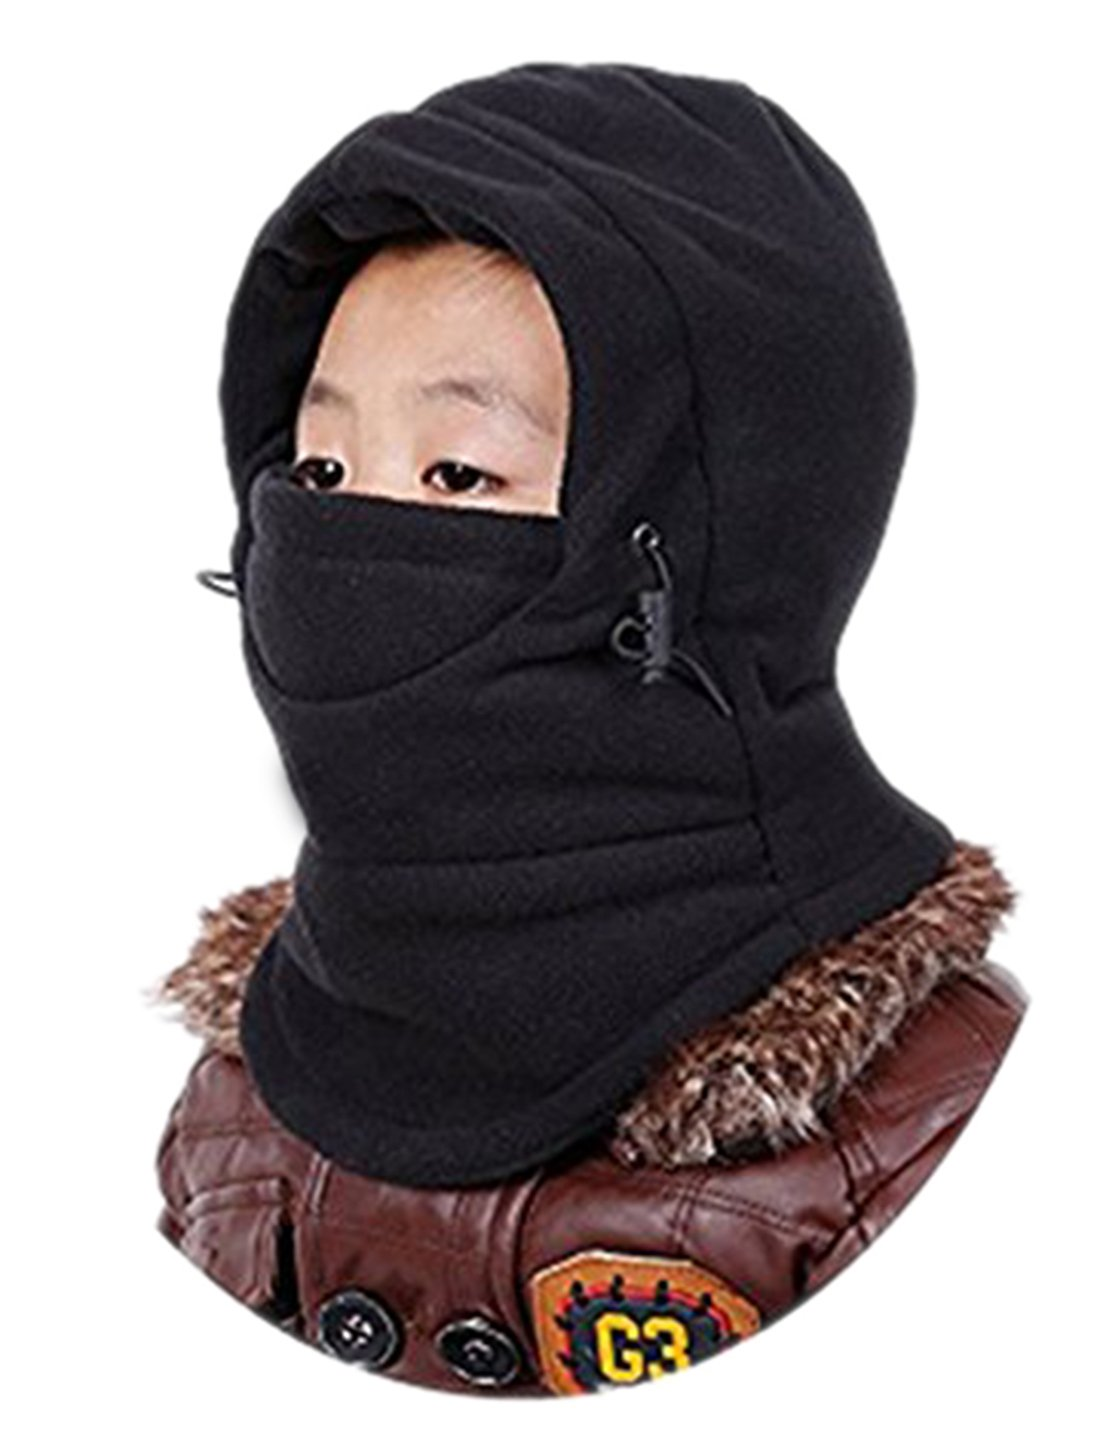 Children's Winter Warm Hat Windproof Ski Cap Thick Thermal Adjustable Balaclava Hood